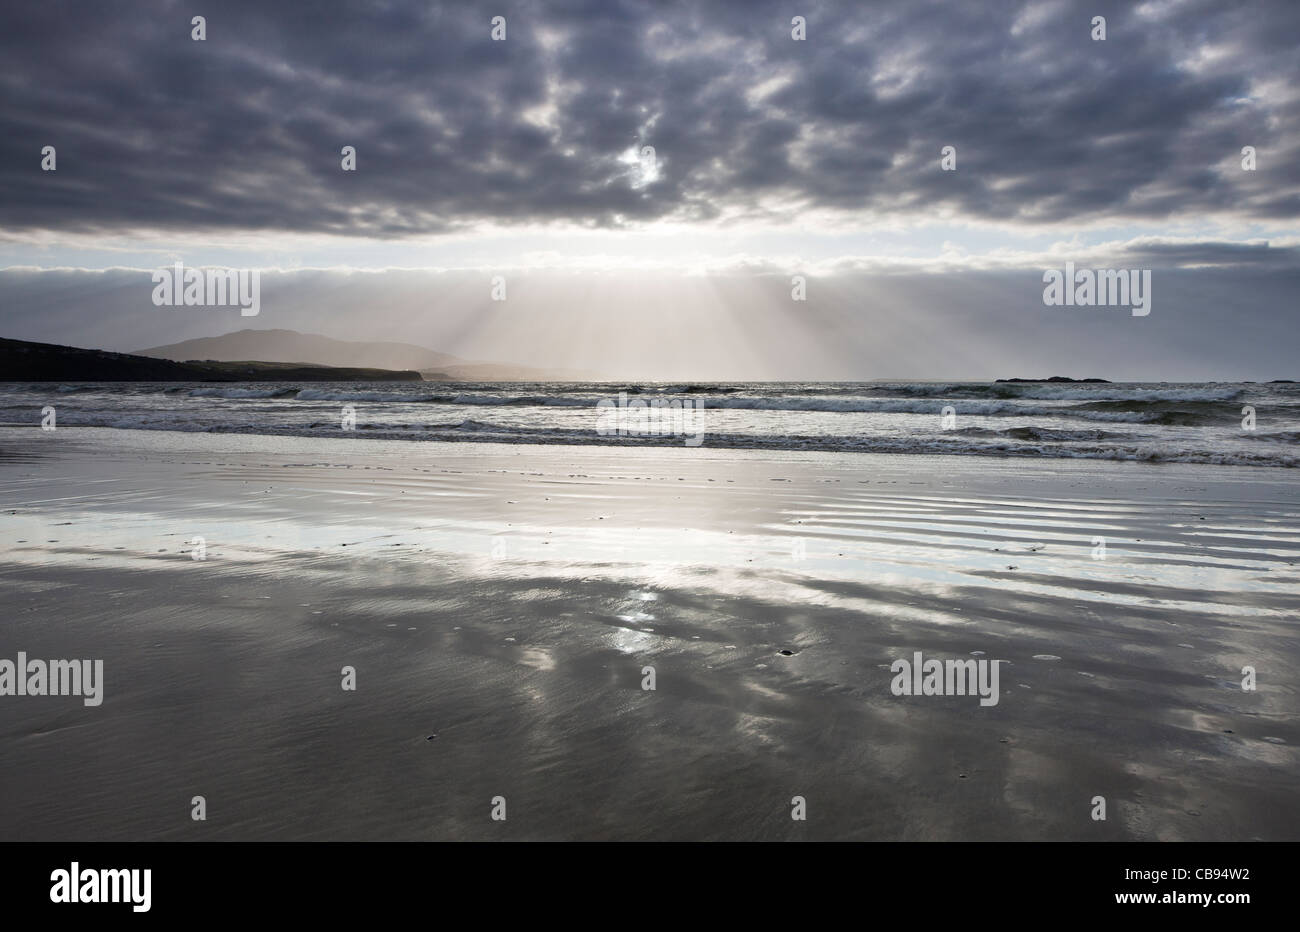 Sunset over Lettergesh beach, County Galway Ireland - Stock Image